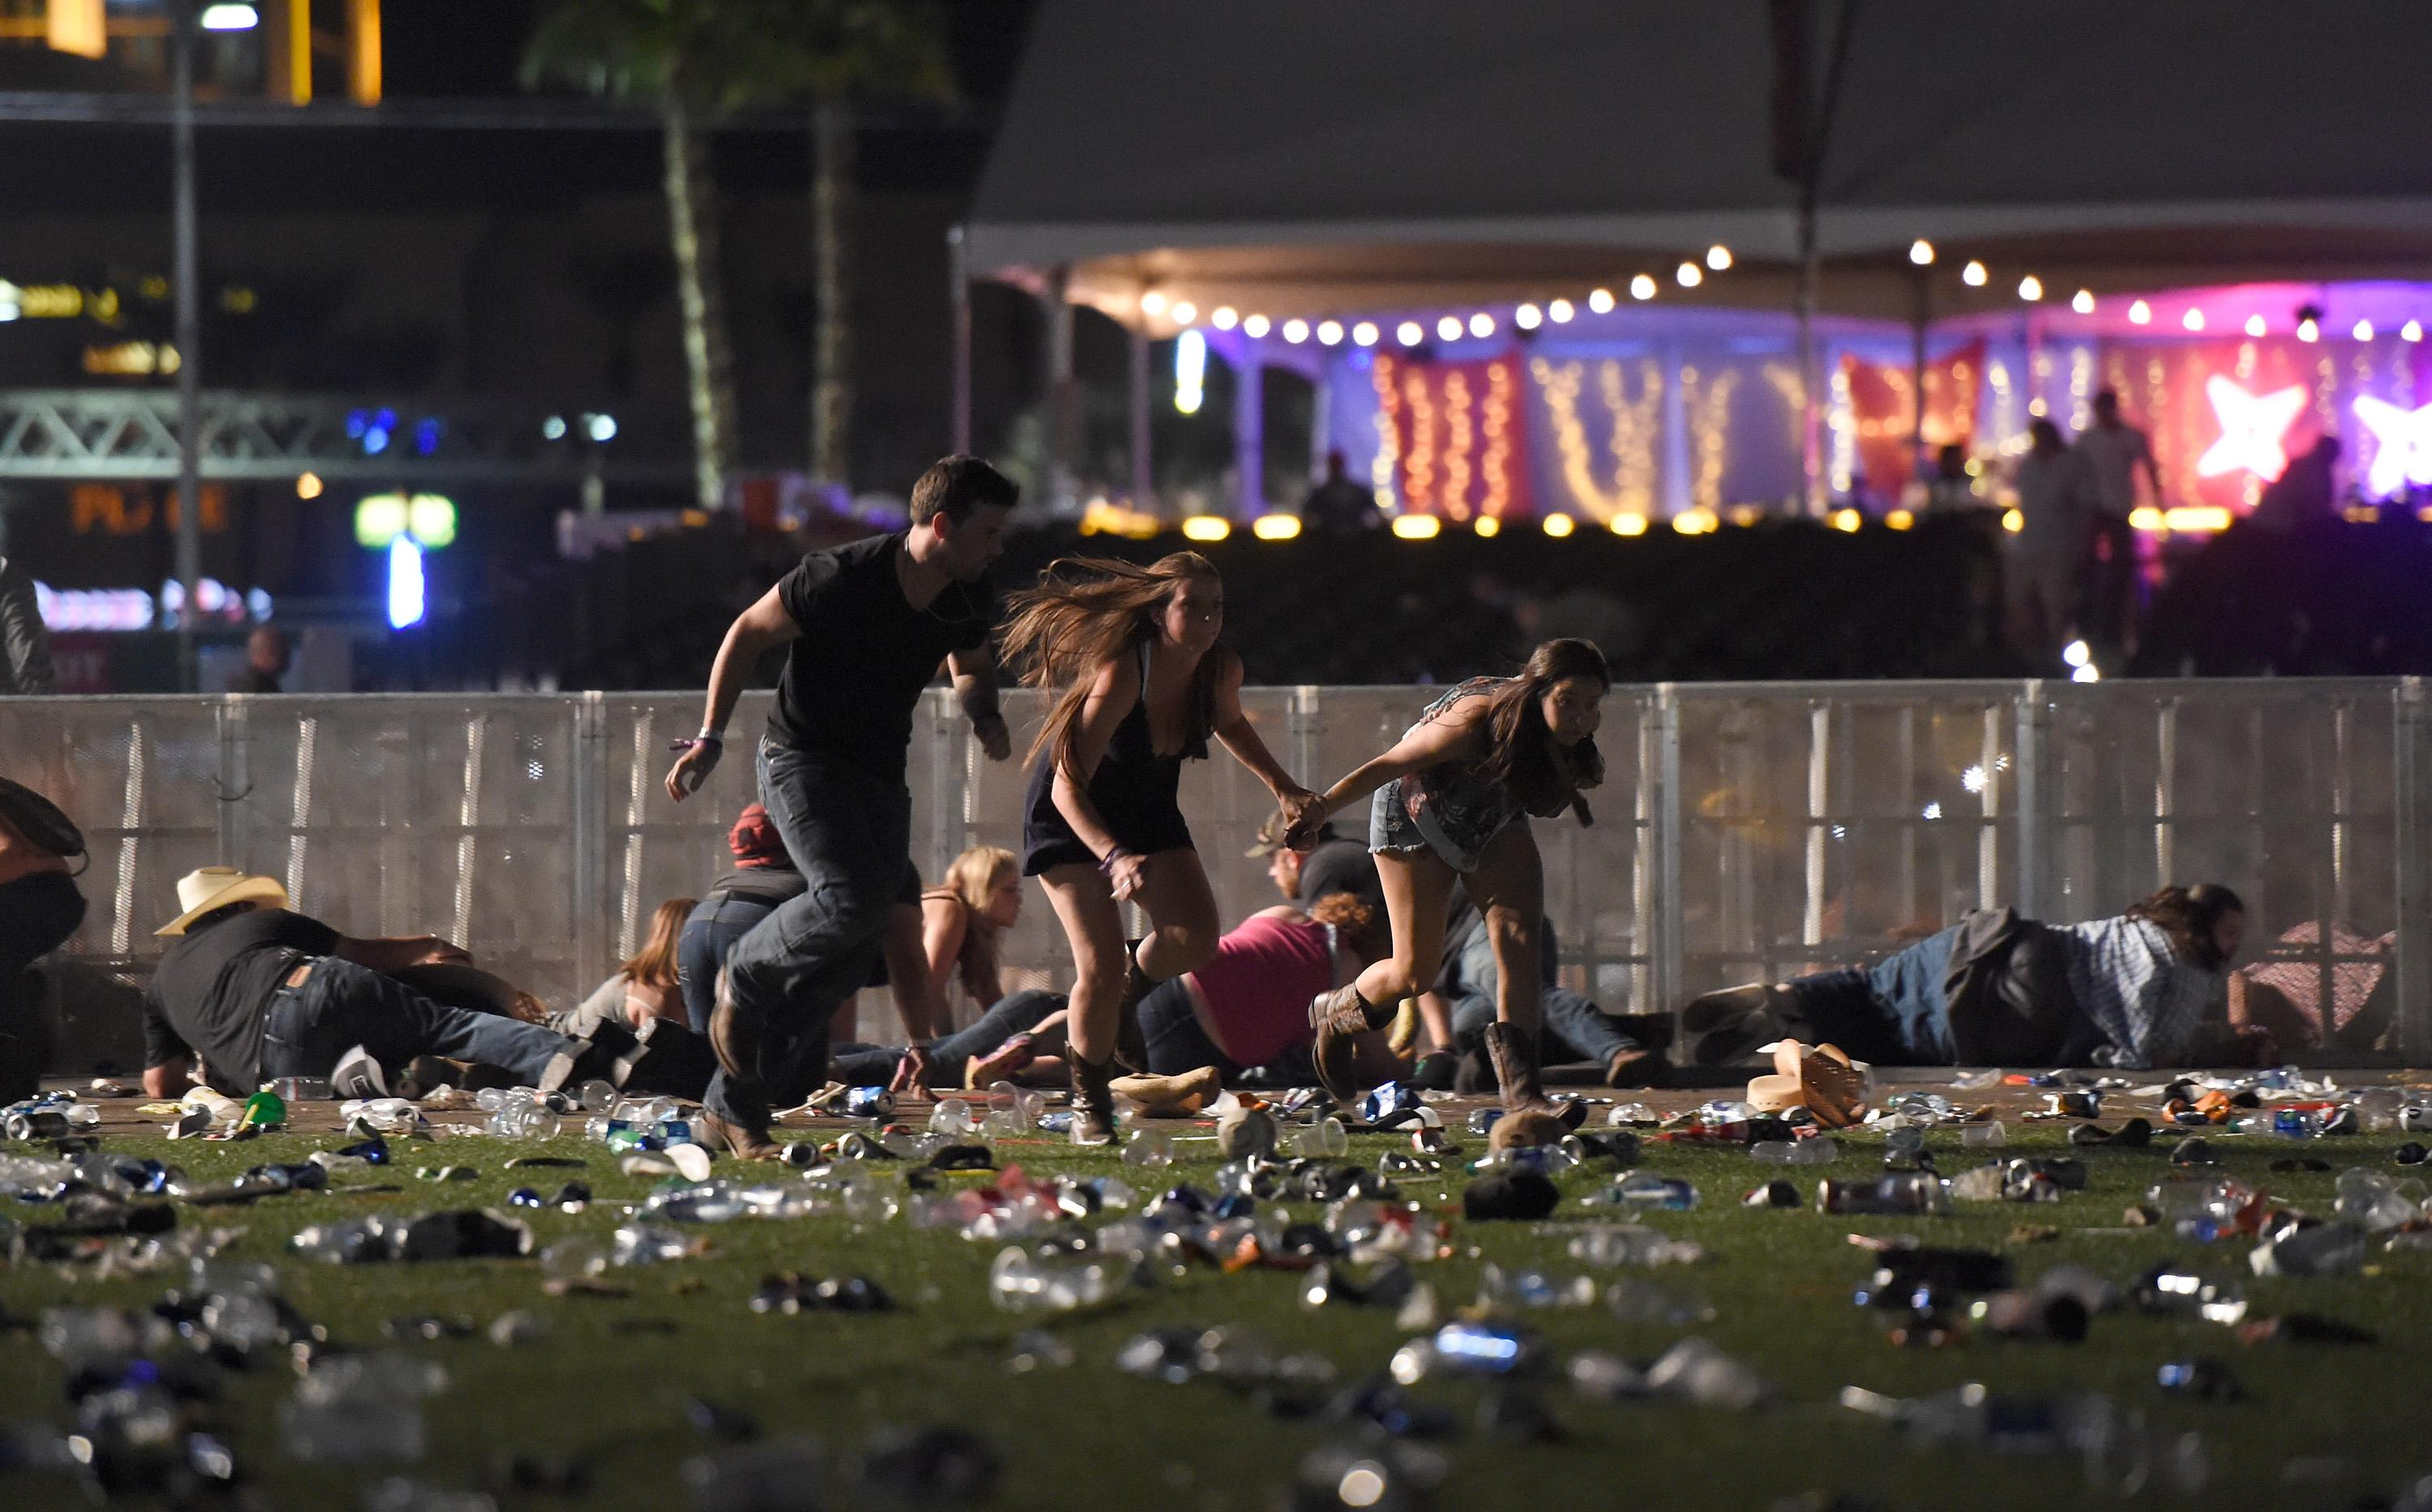 People lay on the on the ground while others fleed to avoid the shots (Picture: Getty)